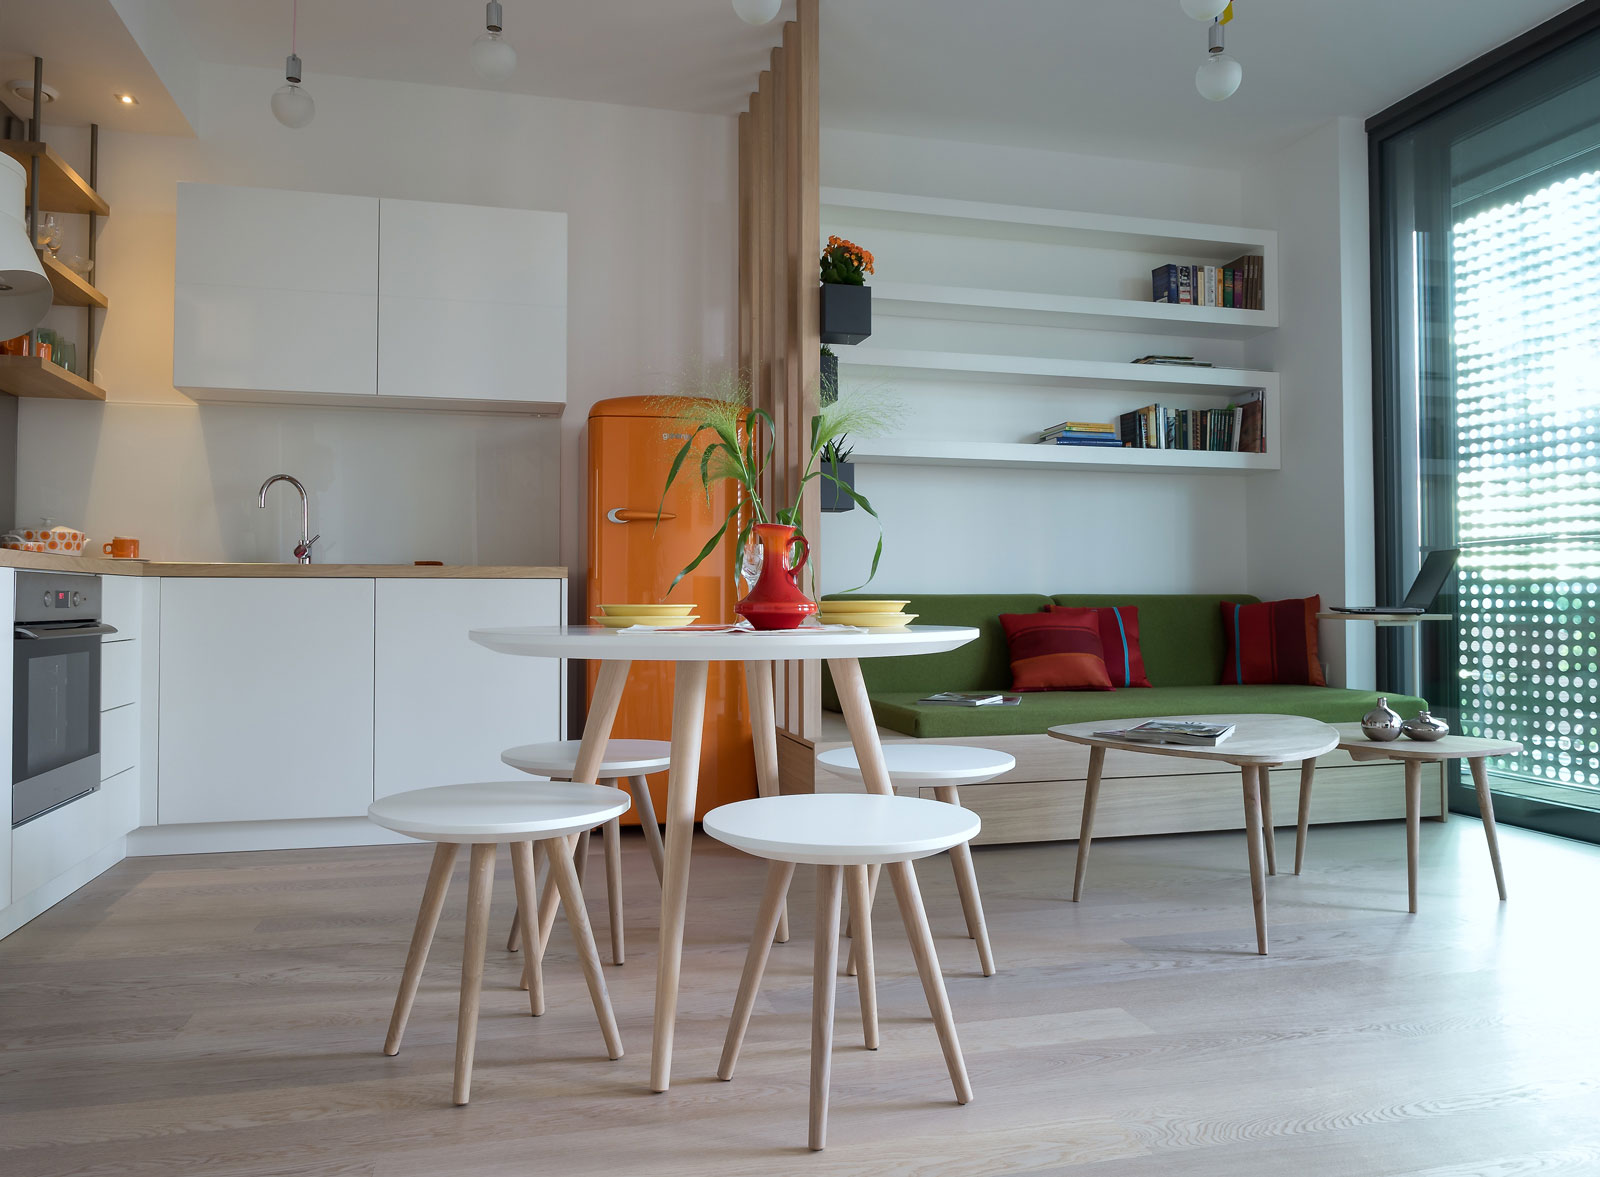 Apartment in Ljubljana by GAO architects